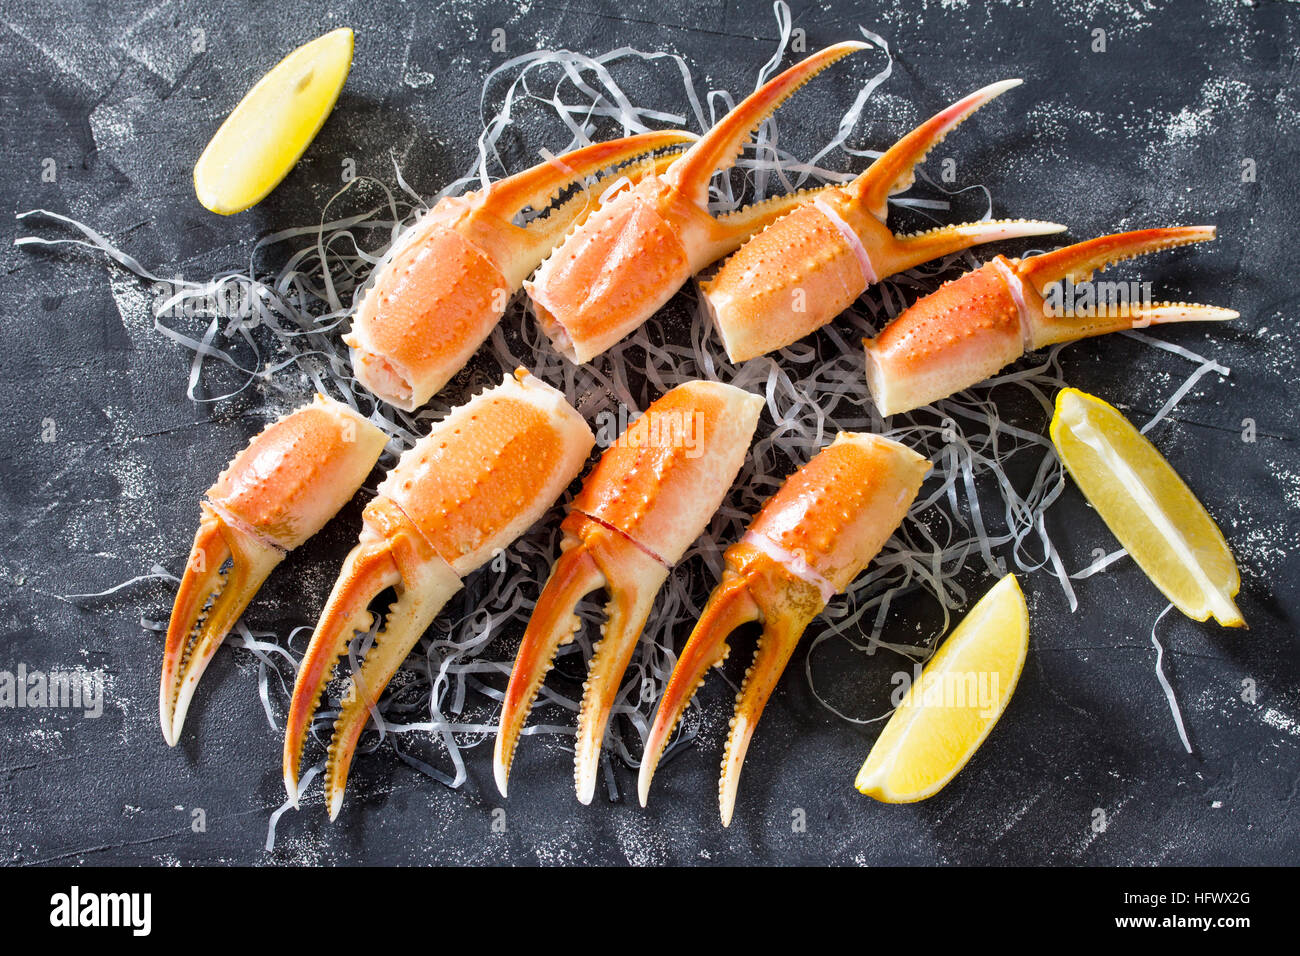 Cooked crab claws with lemon, sea salt and pepper on a concrete background - concept of healthy eating, dieting Stock Photo